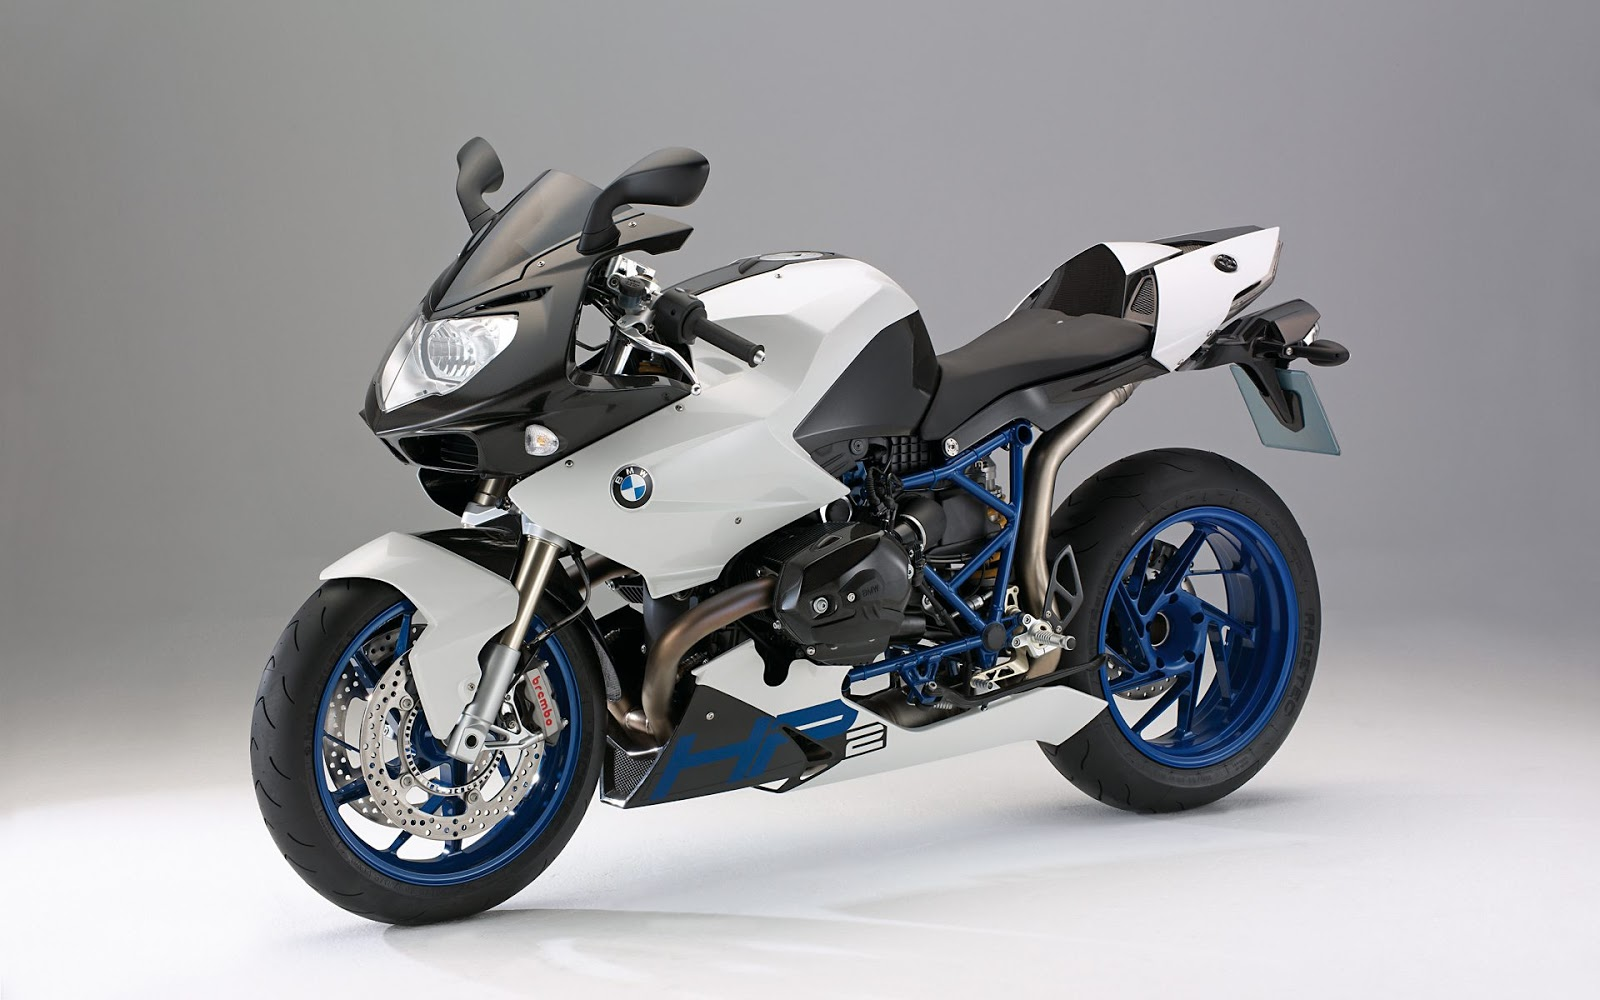 free 3d wallpapers download: sports bike wallpapers